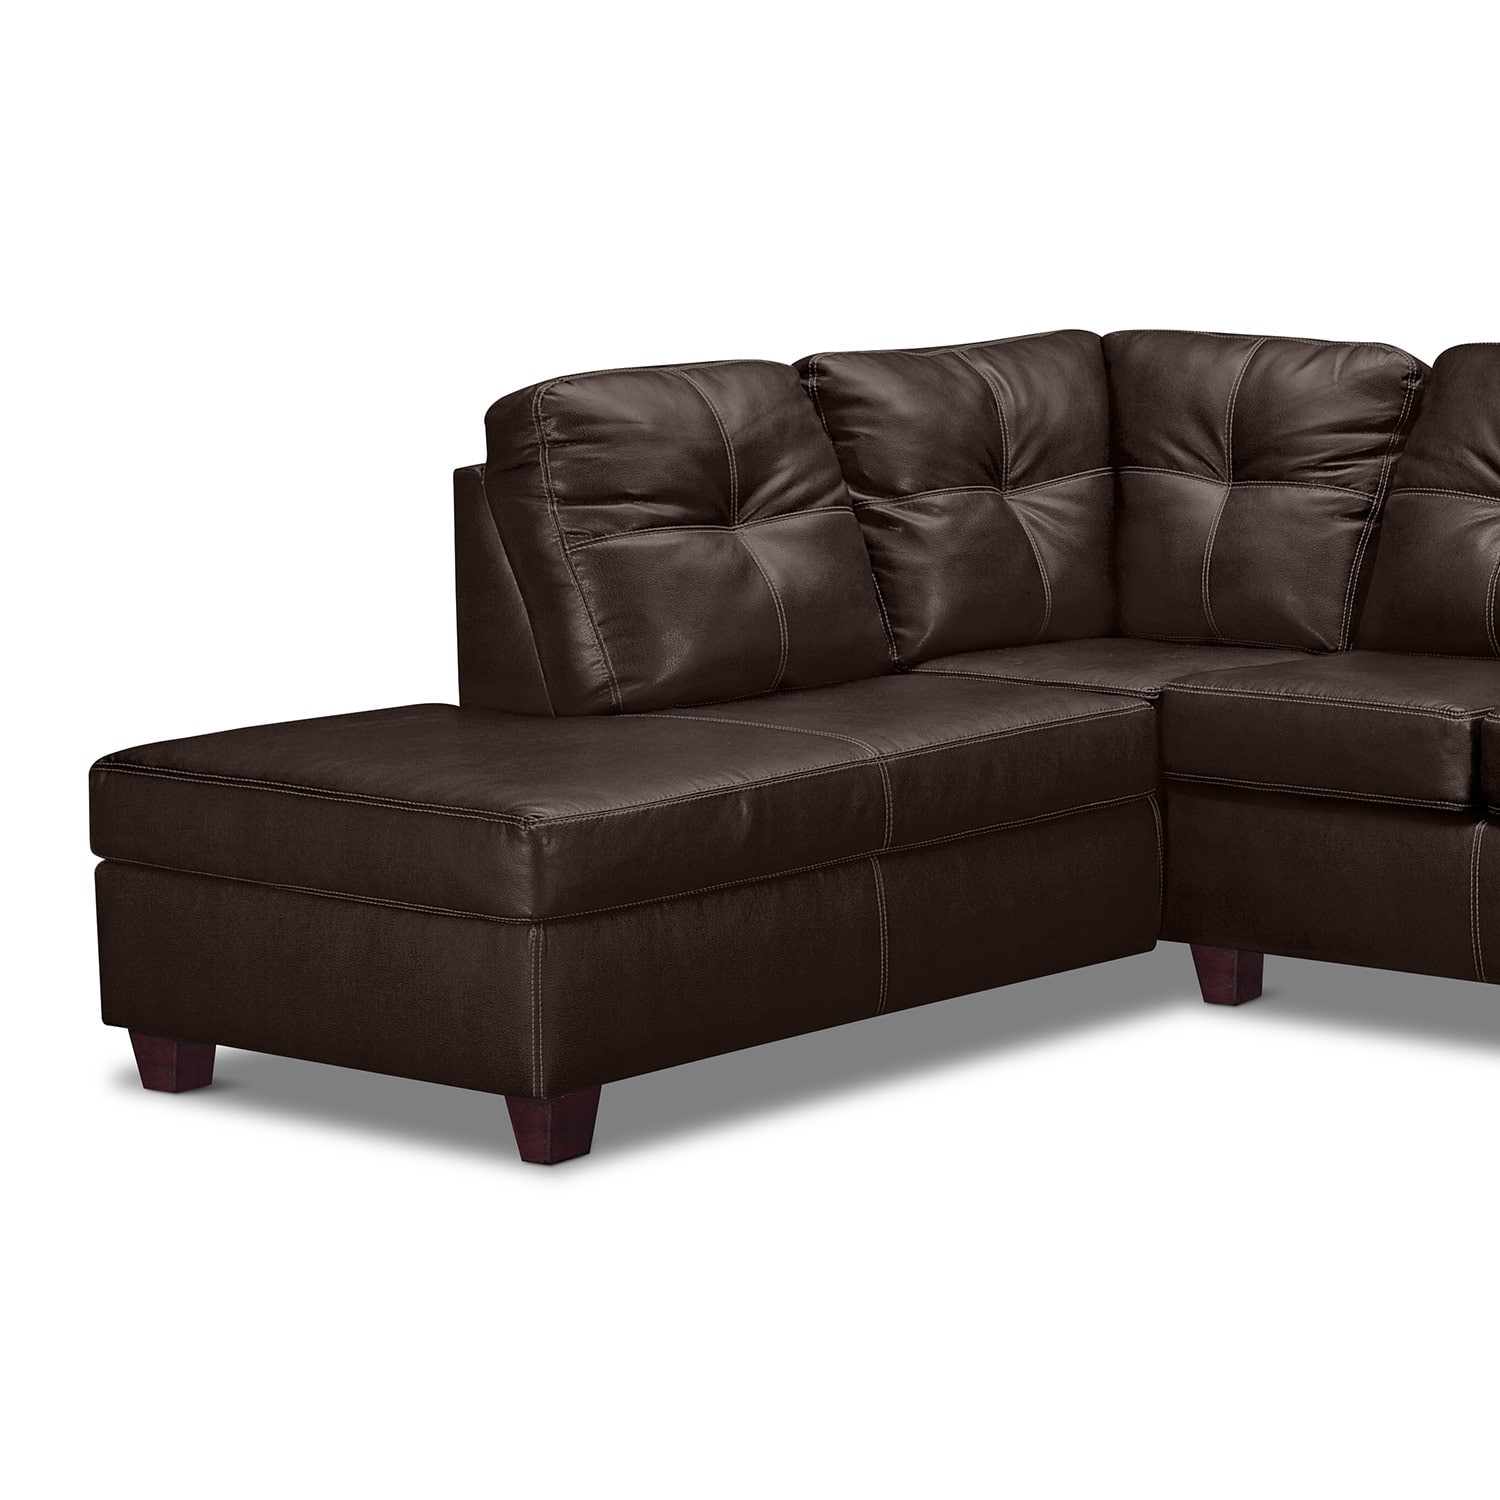 Rialto III Leather 2 Pc. Sectional with Chaise - Value City Furniture